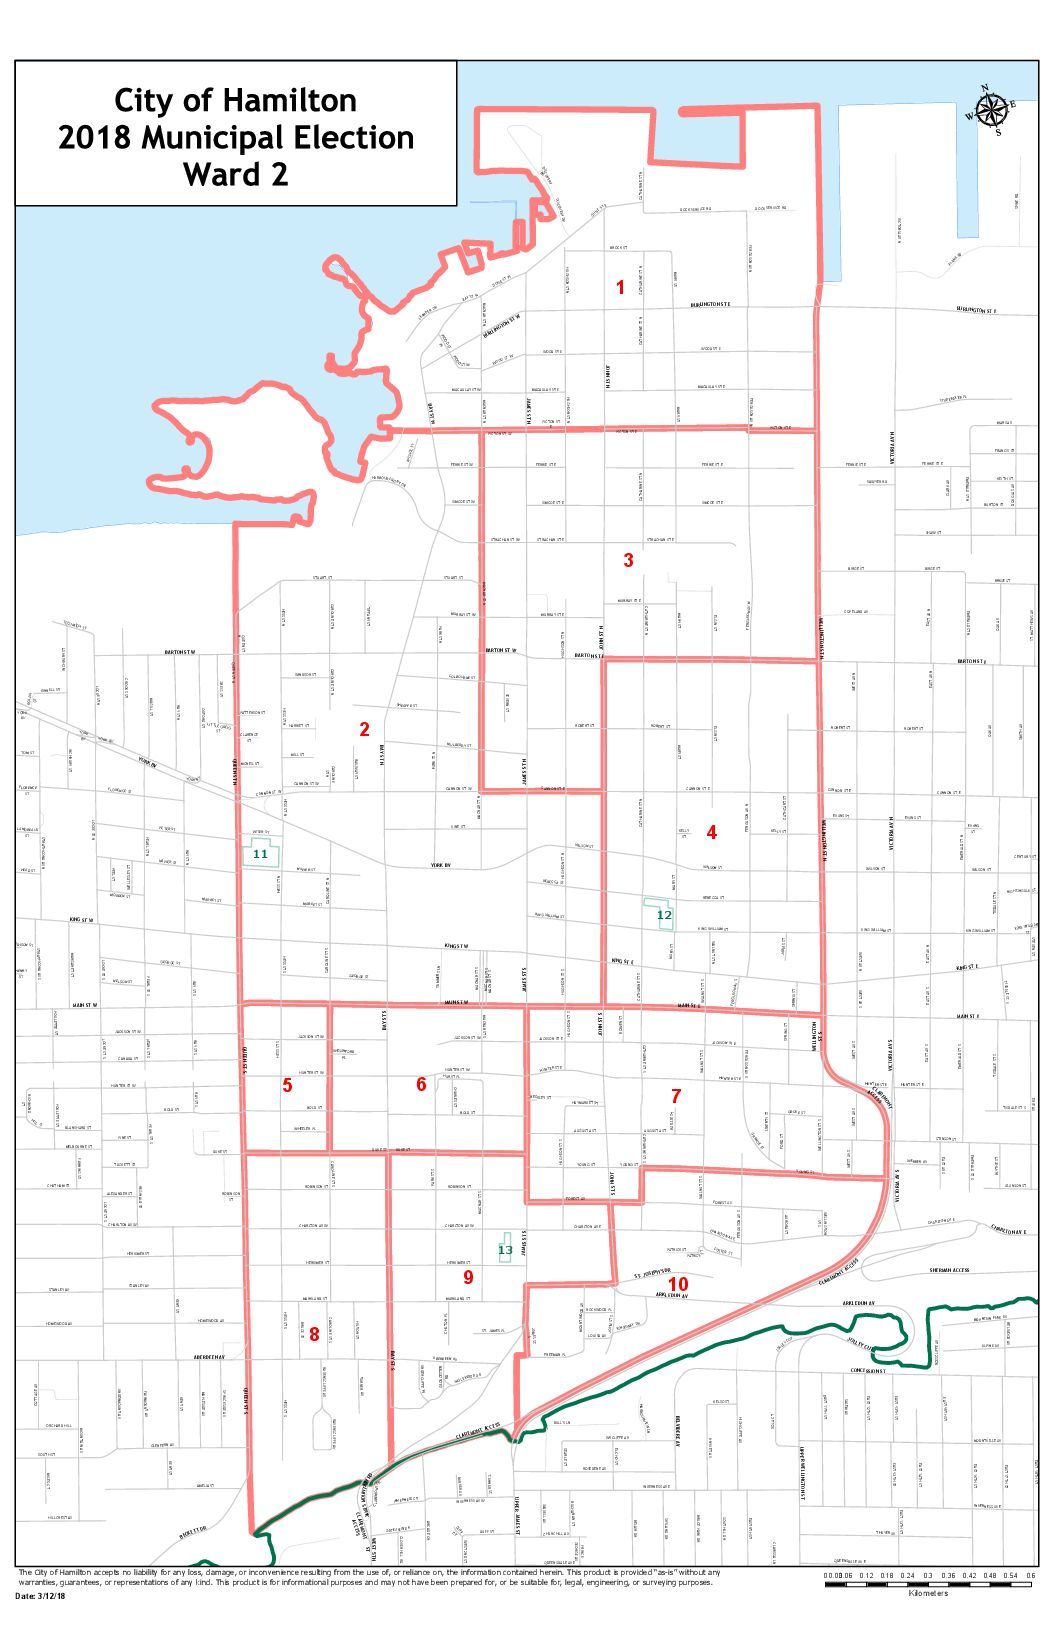 2018 Hamilton Municipal Election Ward Polling Division Maps The Ready To Program Rightclick Save As Circuit Schematic Png Pdf Download Map Right Click Link Image Format Document